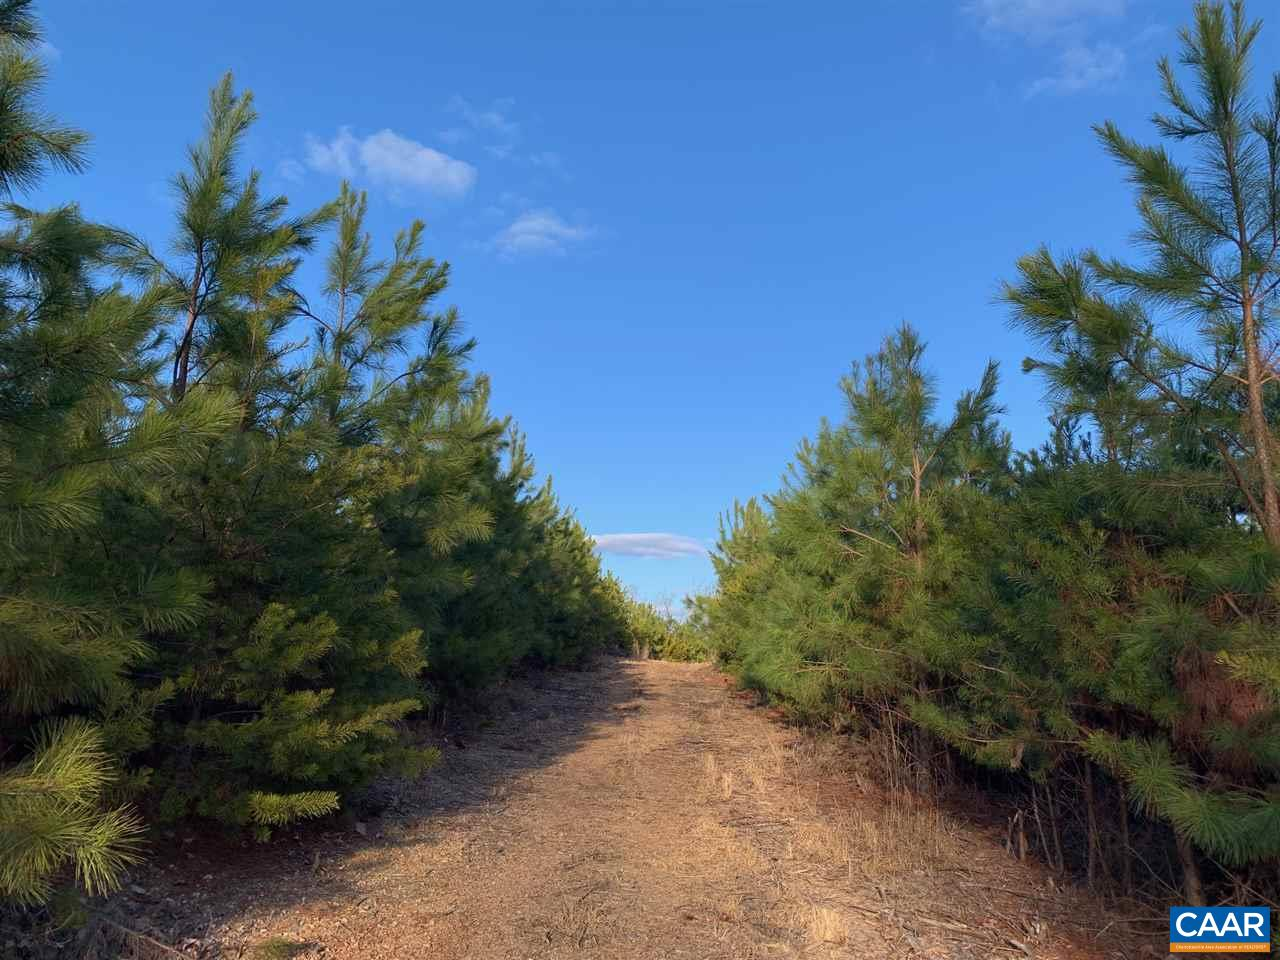 Prime opportunity to own a 115+/- acre pine plantation in Keswick area of Albemarle and Louisa Counties!  Parcel includes state road frontage in Albemarle County, interior road, planted pine plus several prime home sites.  Price to sell below current tax assessments. Here's info from the owner on pine plantation:They were planted February 2015 w/ release spray fall 2016 at 545 trees per acre density, by a professional tree service.  They were loblolly pine trees, specifically, CP trees.  CP are control pollinated, which are the highest grade of improved trees available from Virginia DoF.  Also, near some SMZ, we planted approximately 3,500 shortleaf pine for diversity. Great location minutes to Zion Crossroads and Pantops.